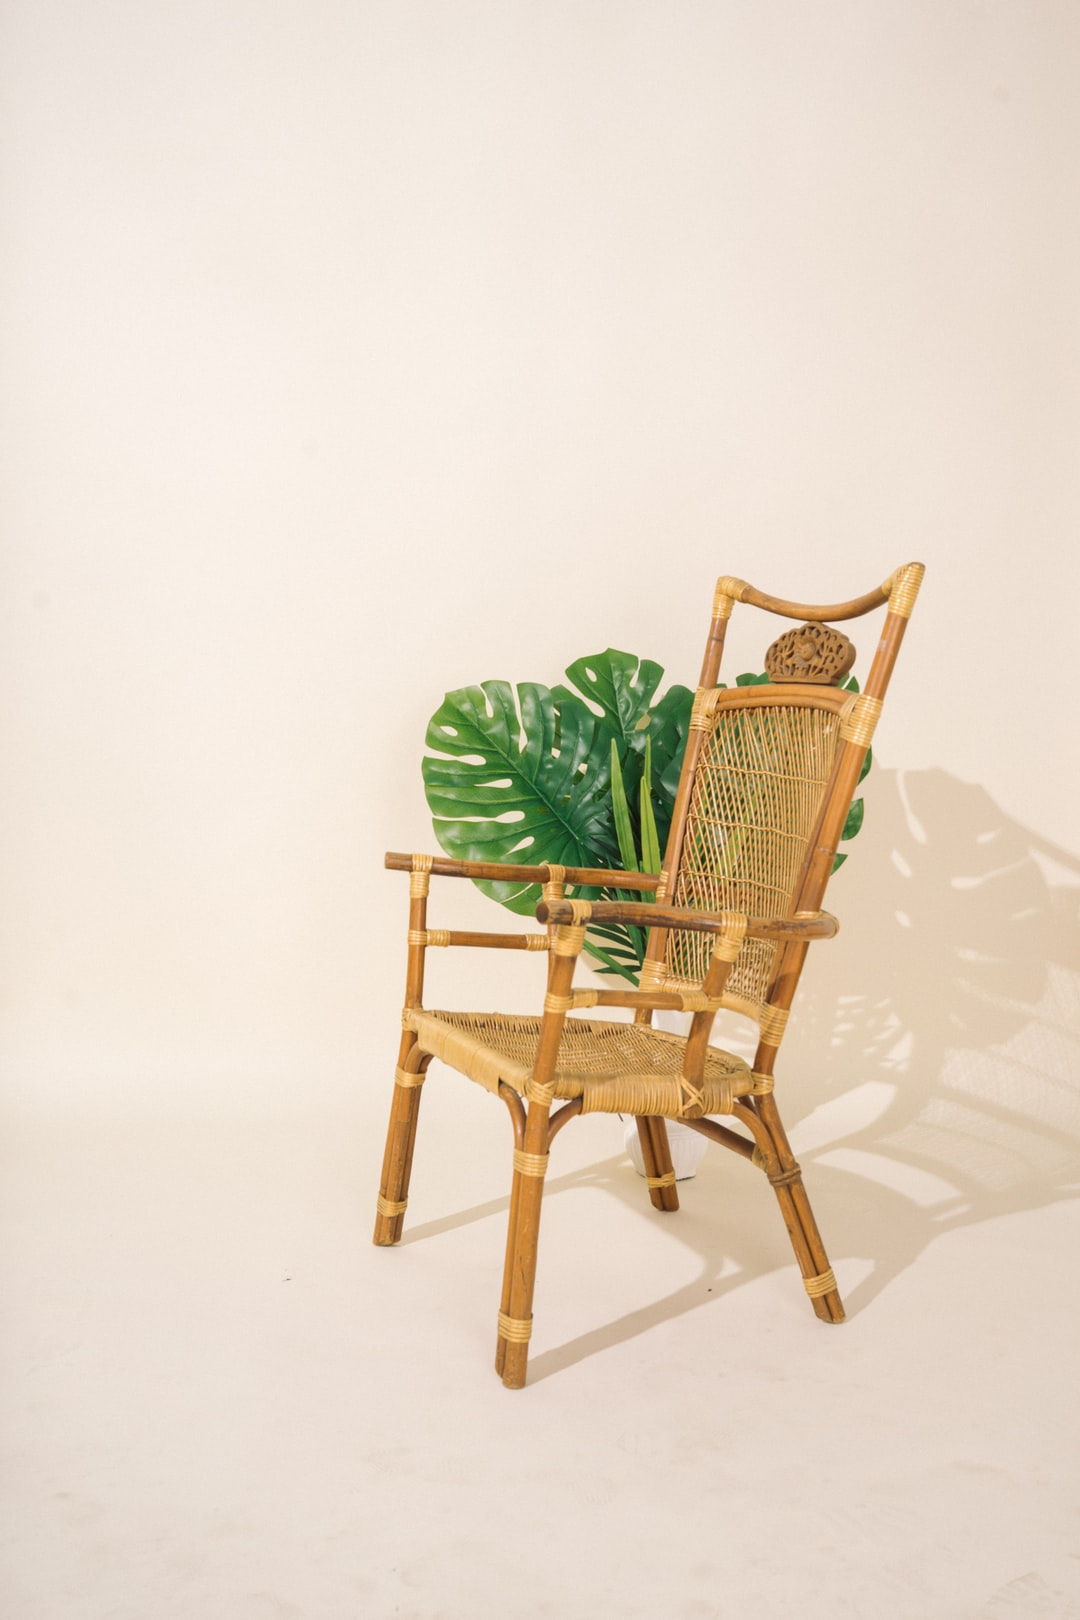 Ratan Chair on a Cream Seamless Backdrop Background Plate